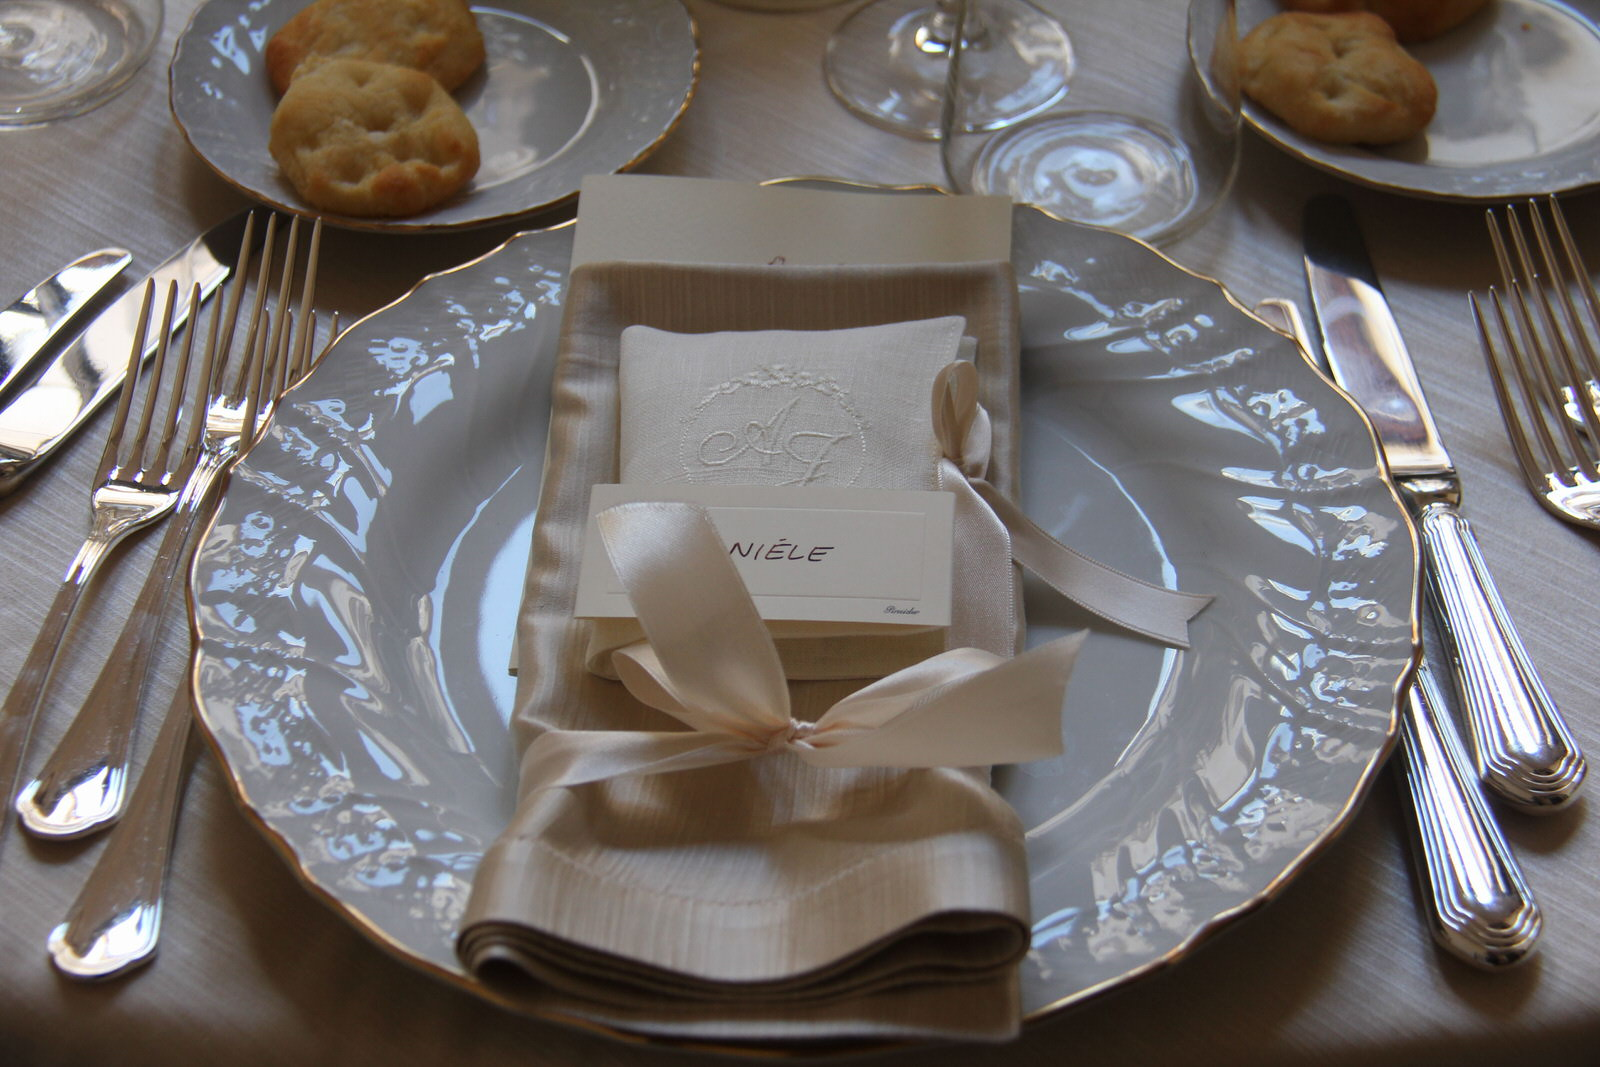 tuscany-wedding-planners-papeterie14.JPG